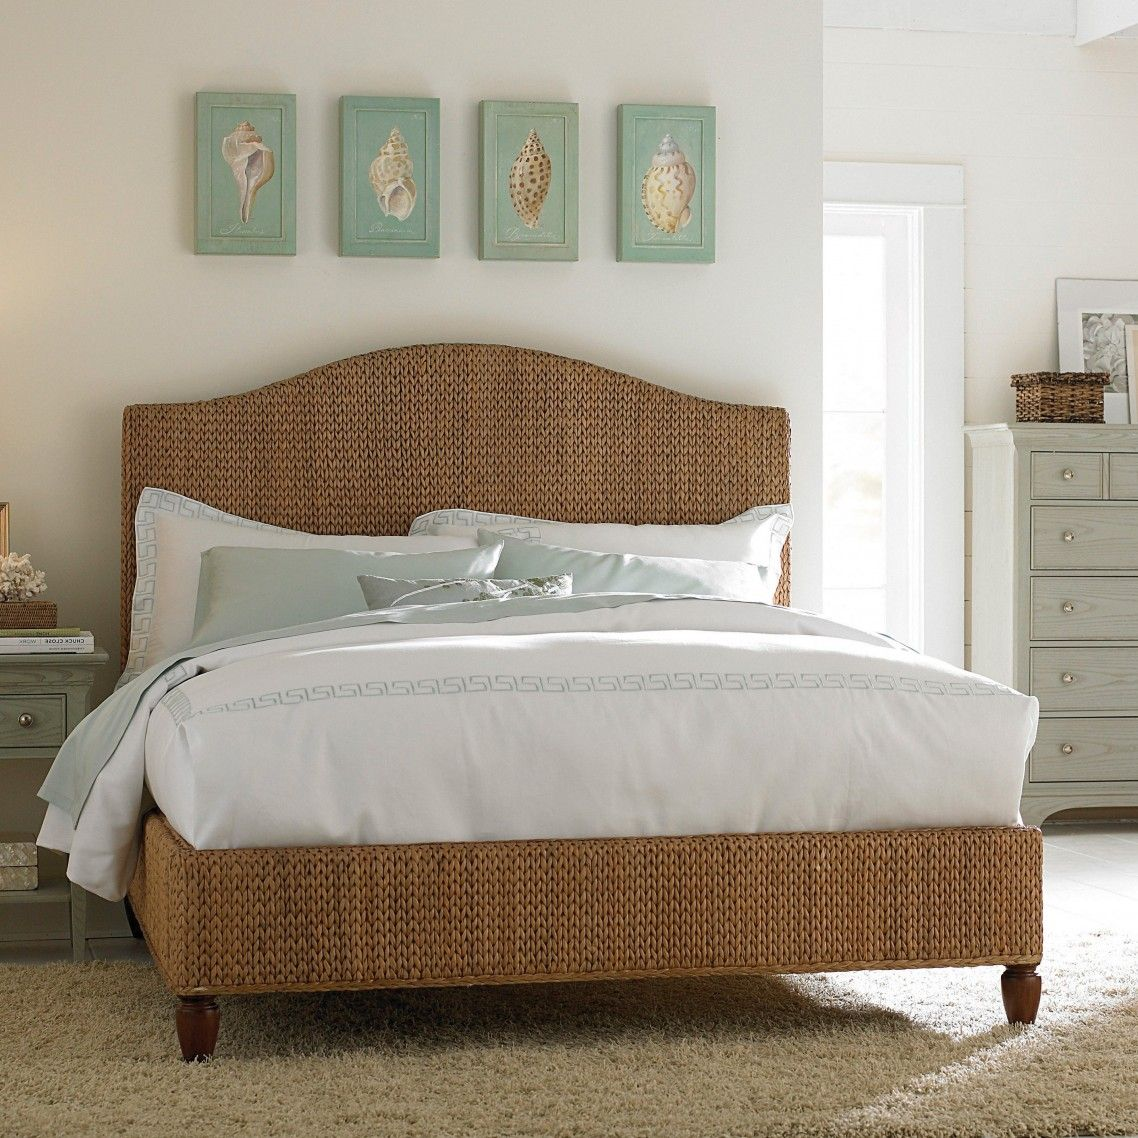 awesome excellent brown wicker rattan mid century queen bed frame with curved stylish headboard and brown